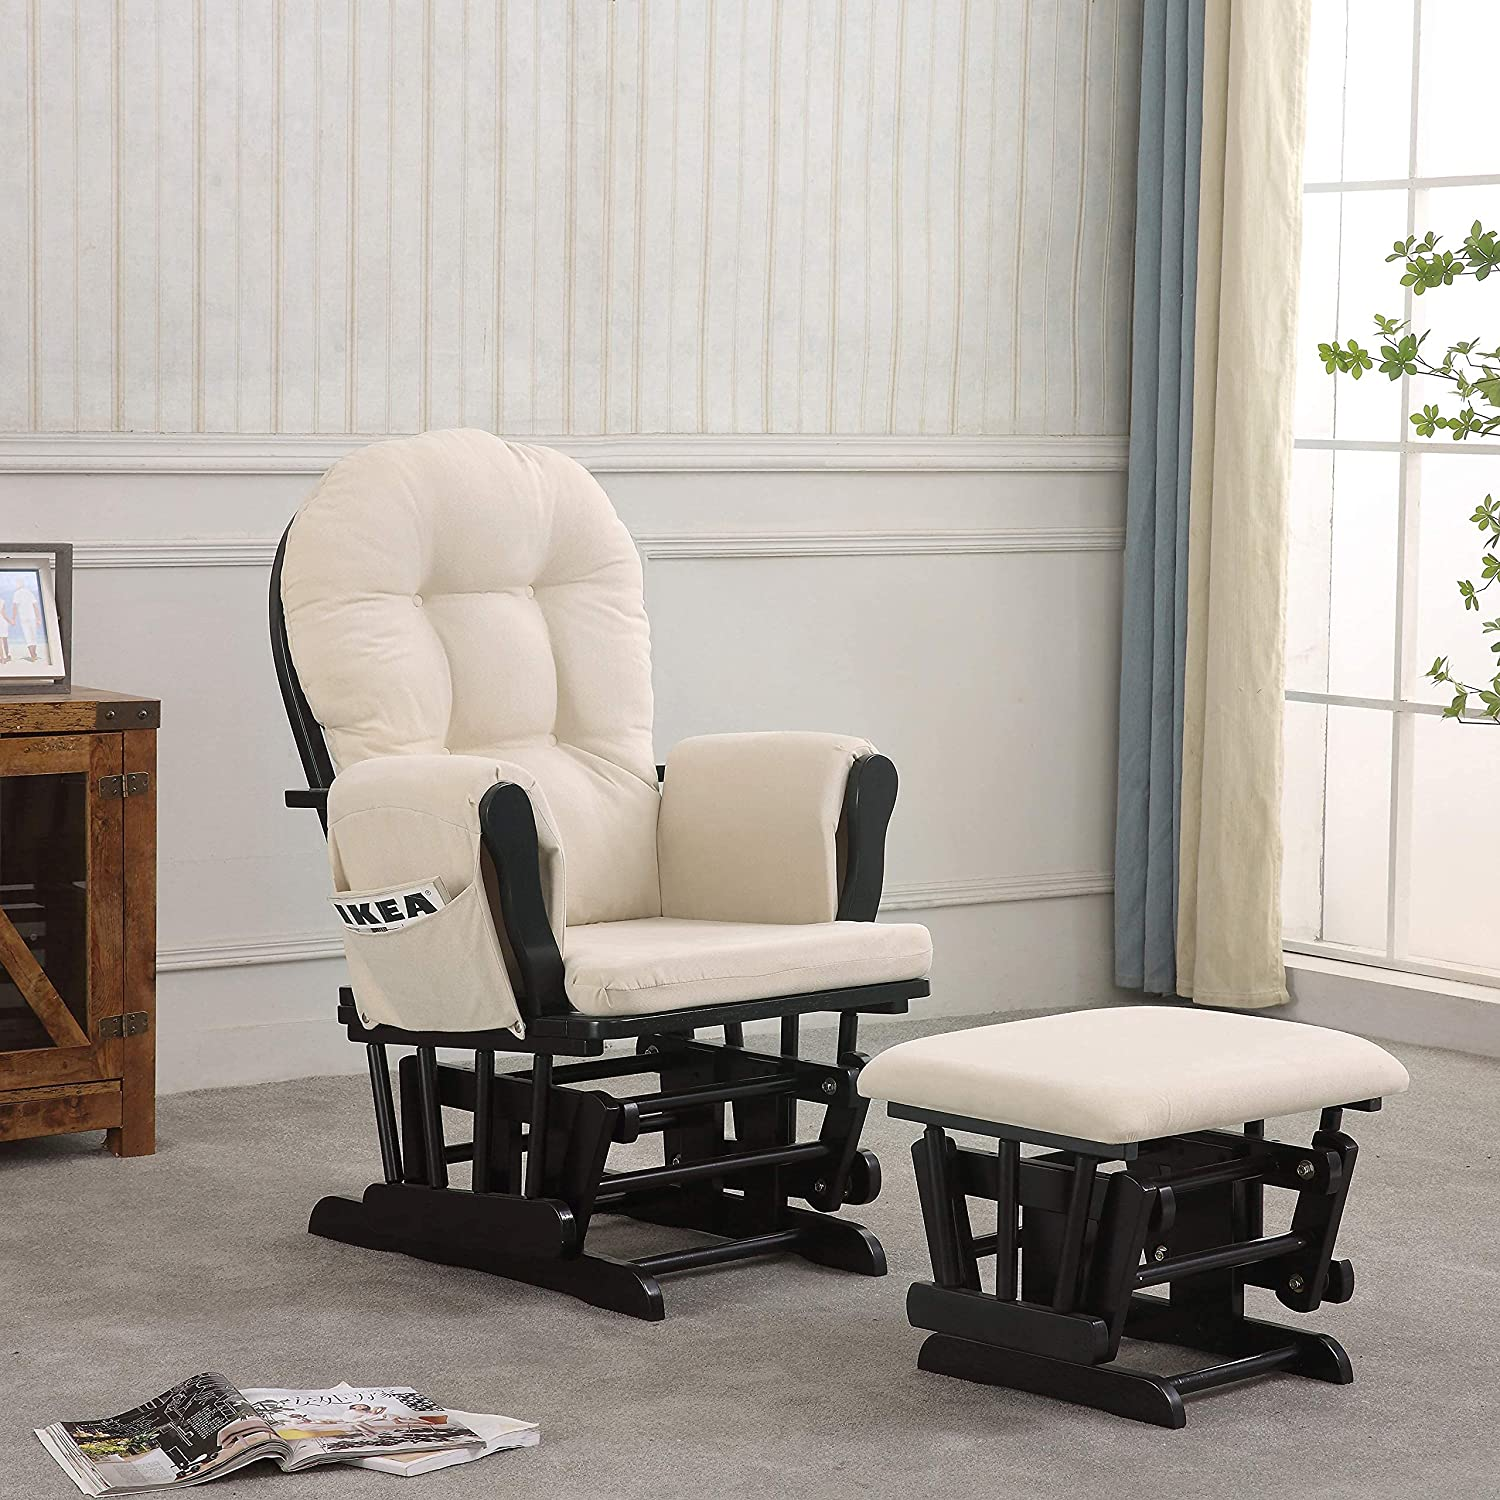 Atoll Free shipping / New Glider Complete Free Shipping with Beige Black Ottoman